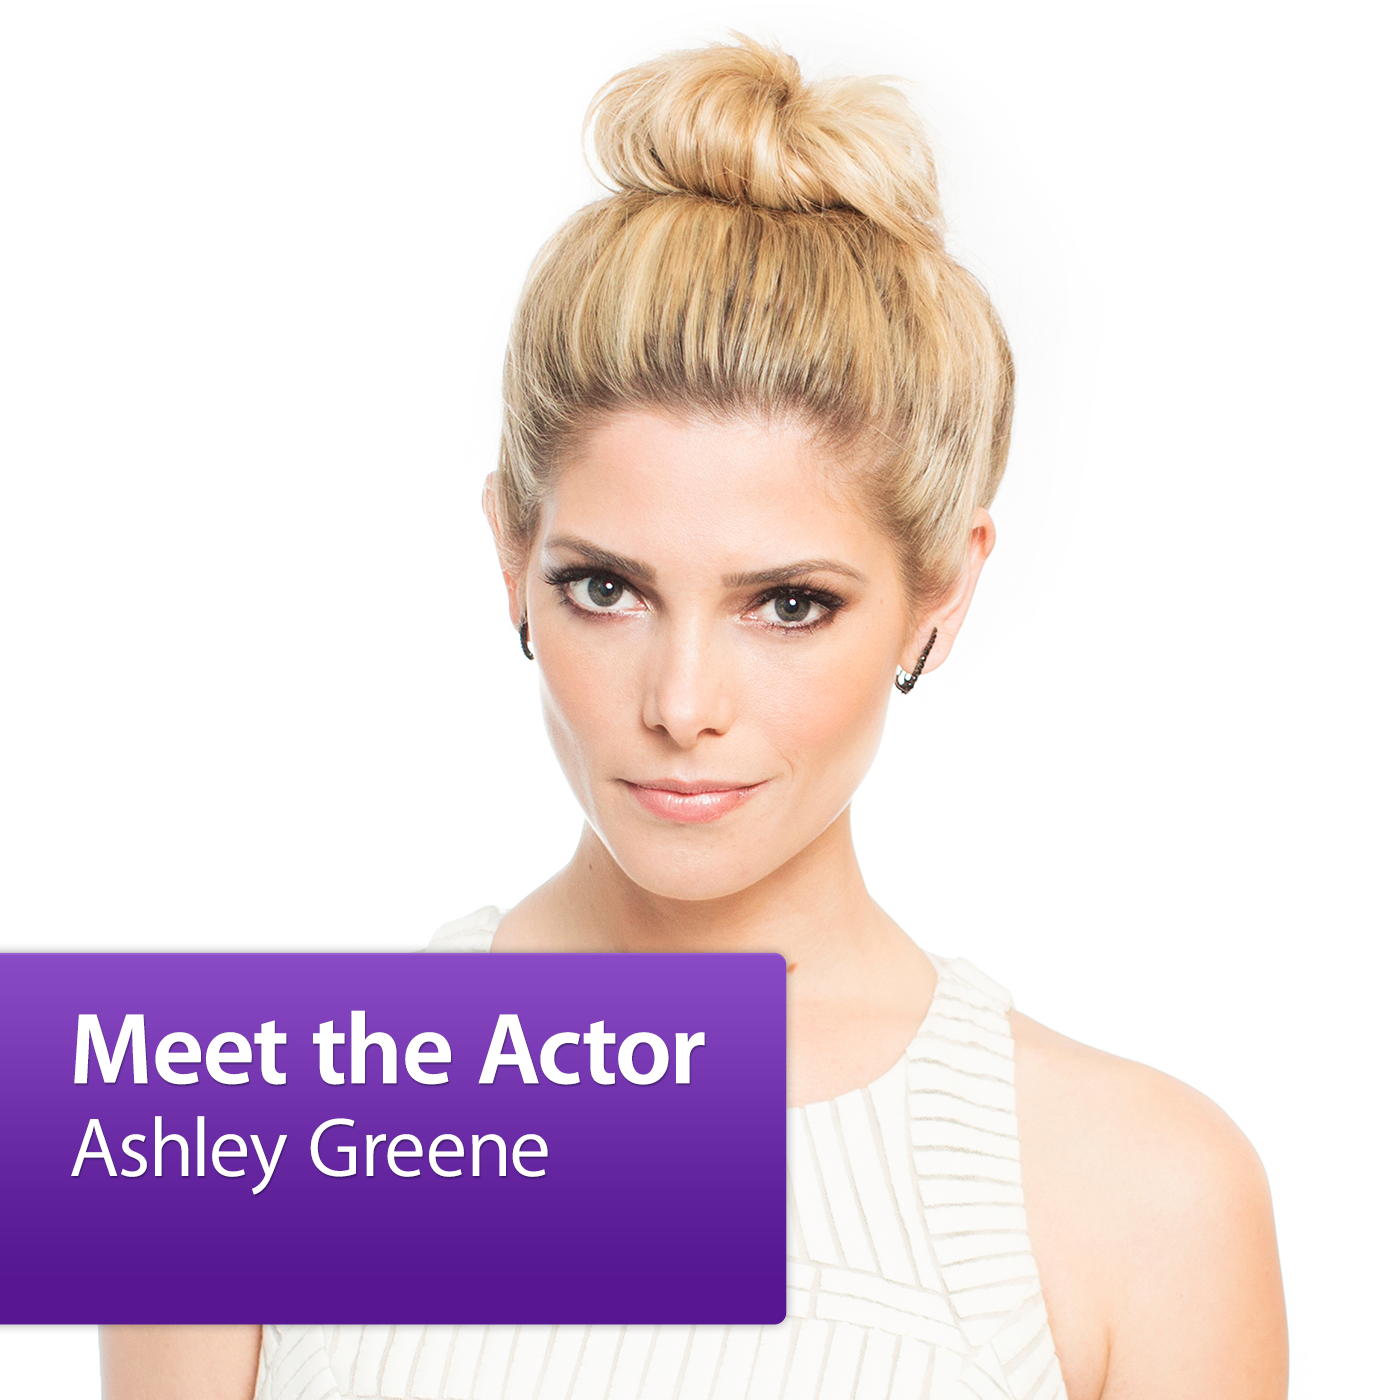 Ashley Greene: Meet the Actor